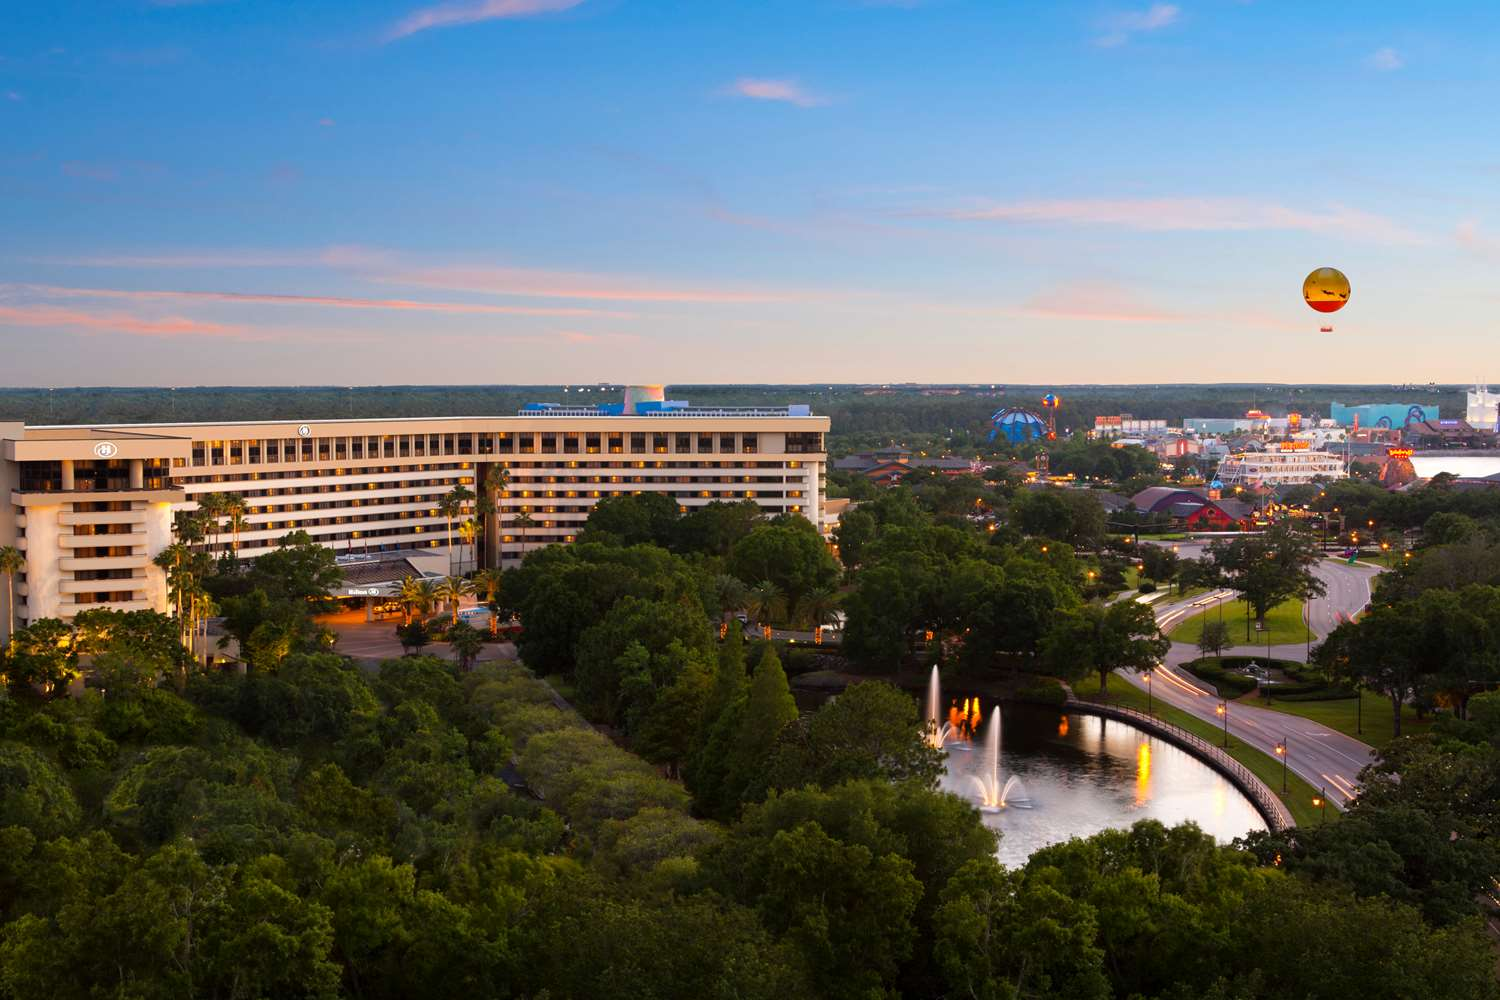 Hilton Hotel Lake Buena Vista